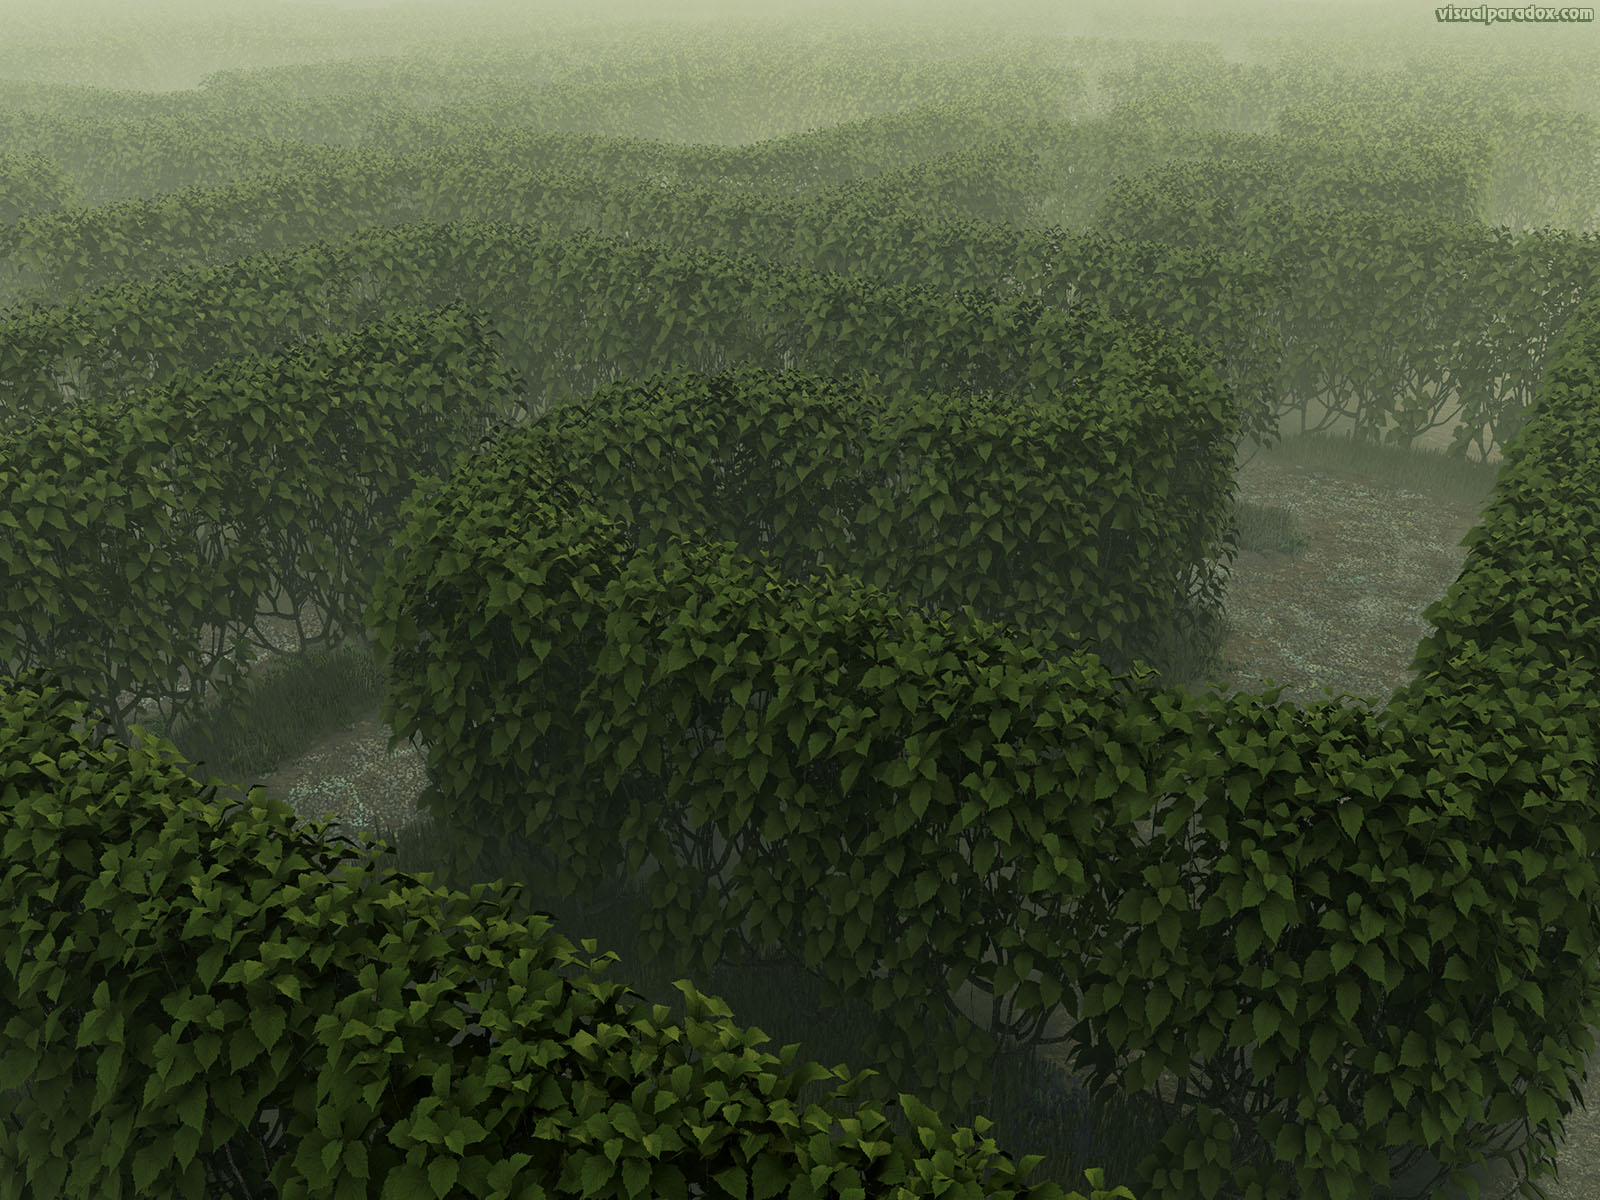 garden, path, labyrinth, deadend, lost, haze, fog, bush, shrub, solve, 3d, wallpaper